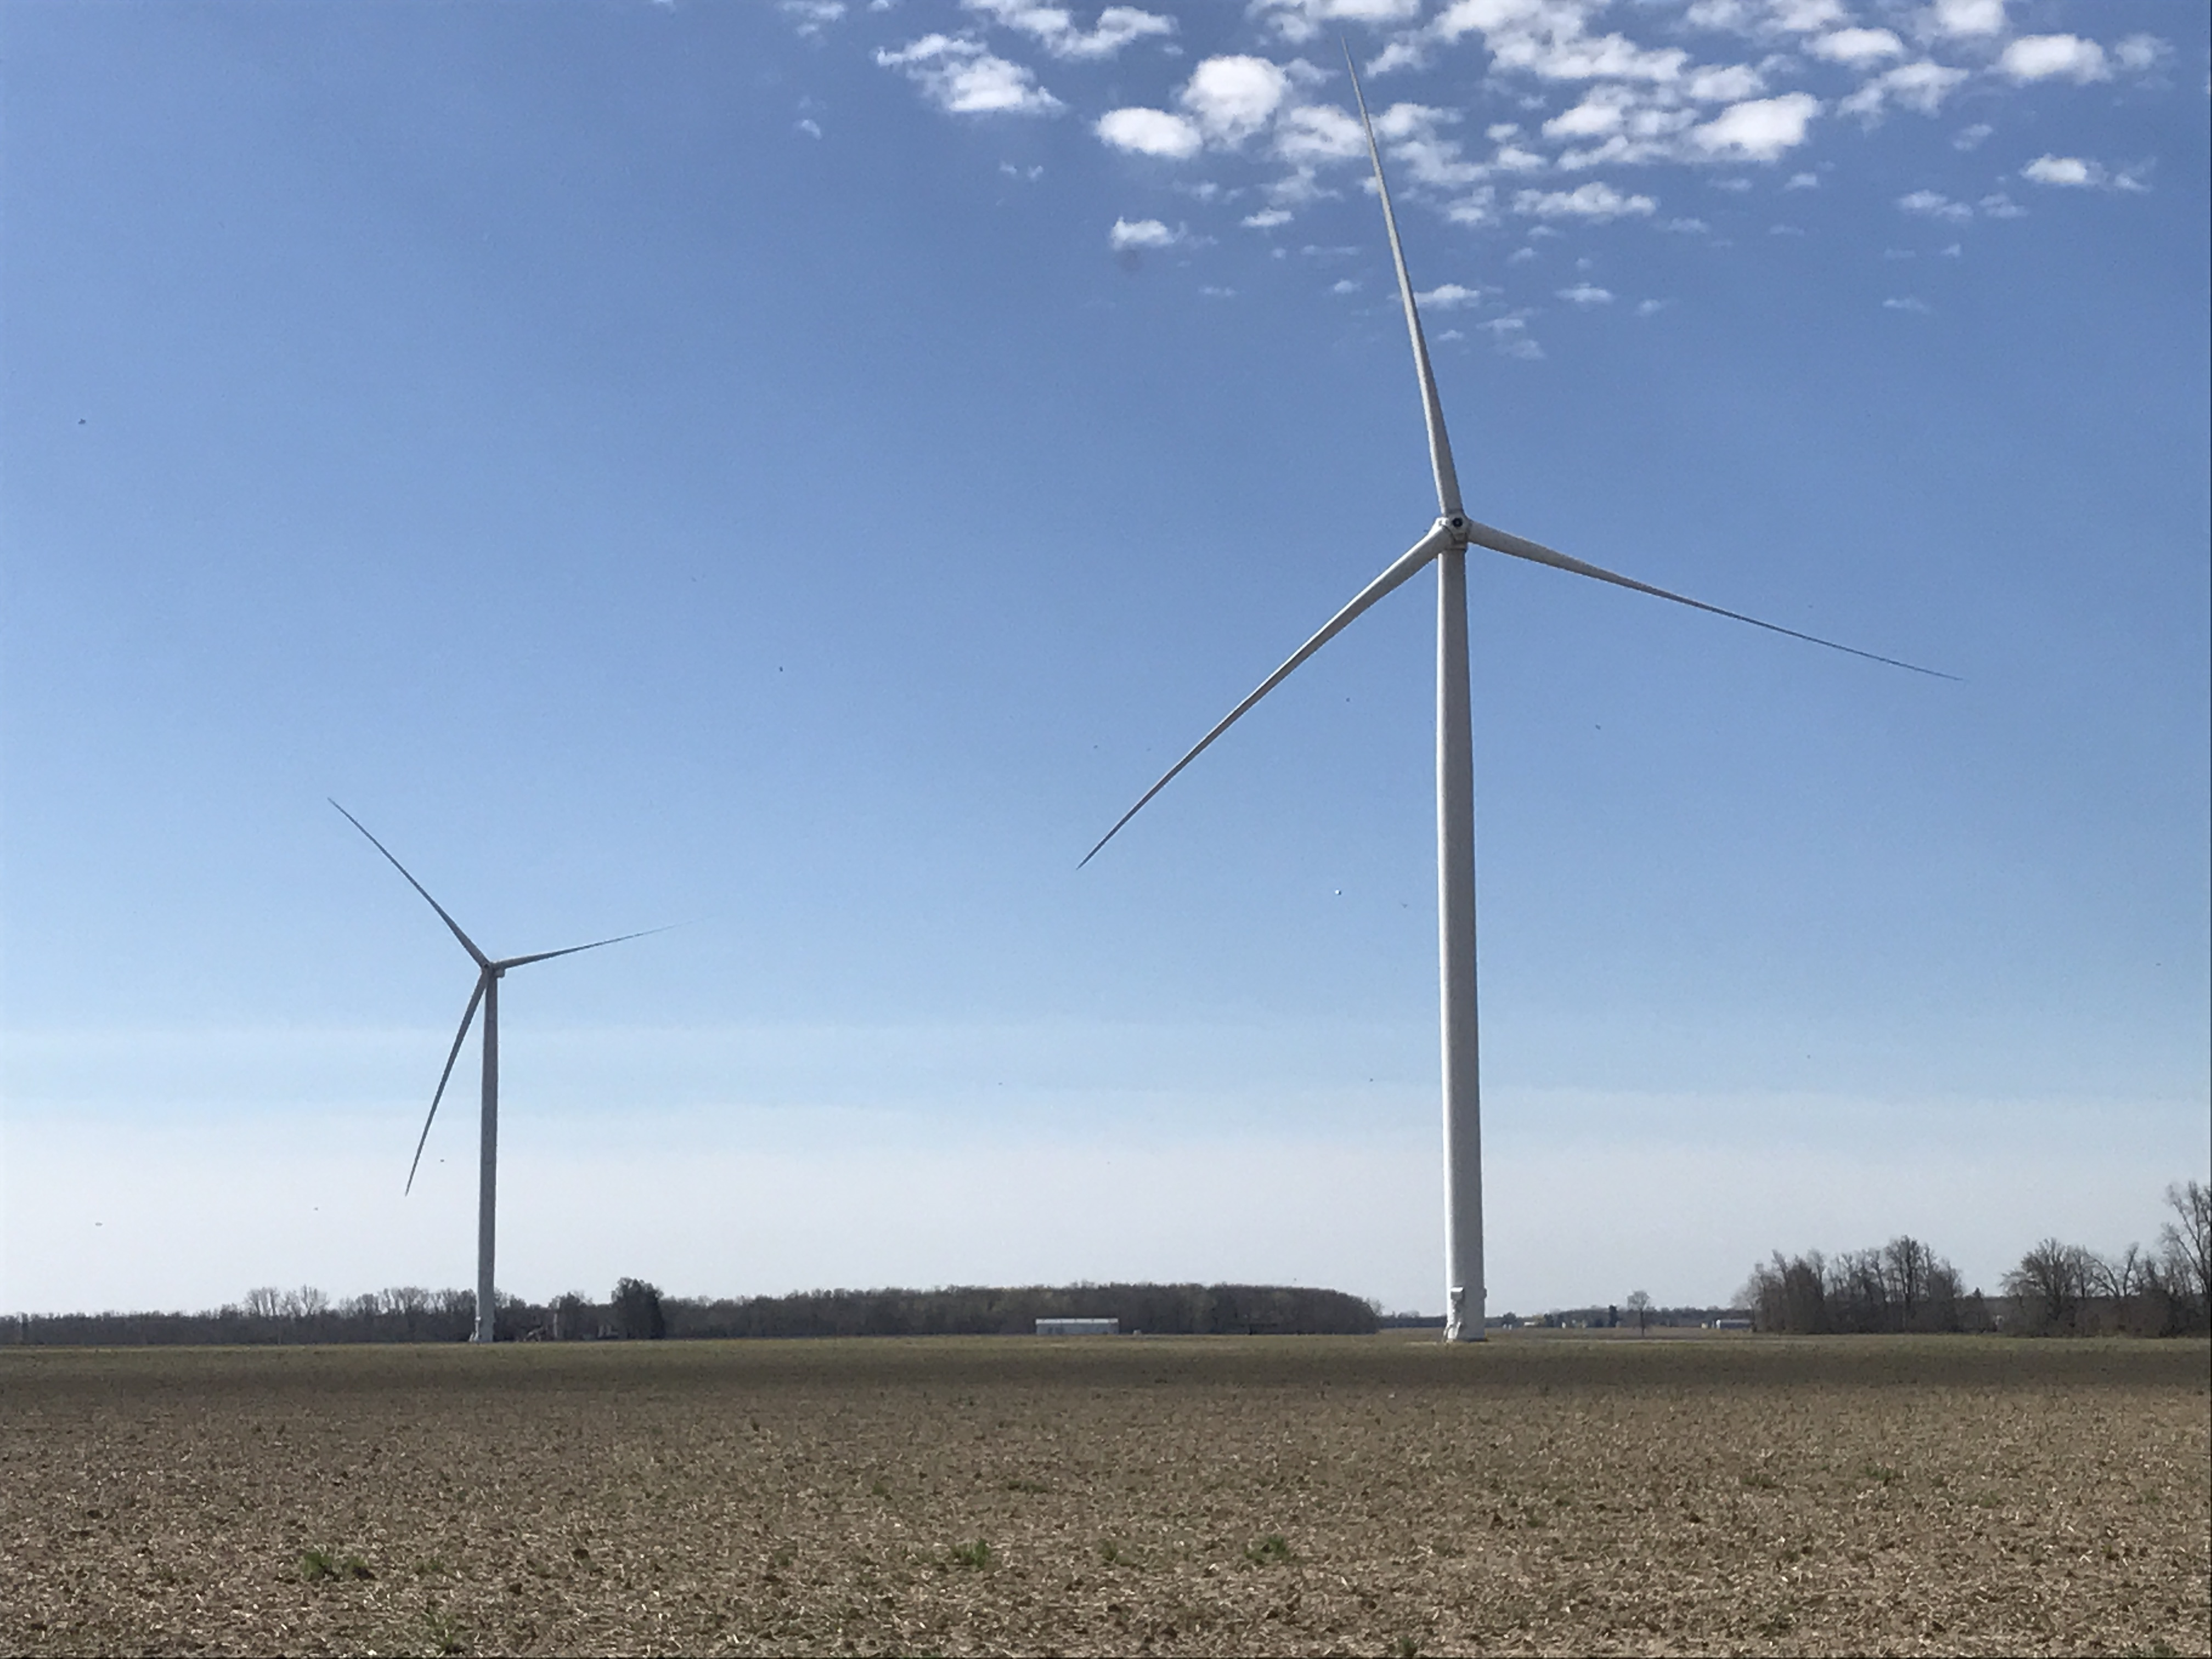 Dte Declines Participation In Township Wind Farm Debate